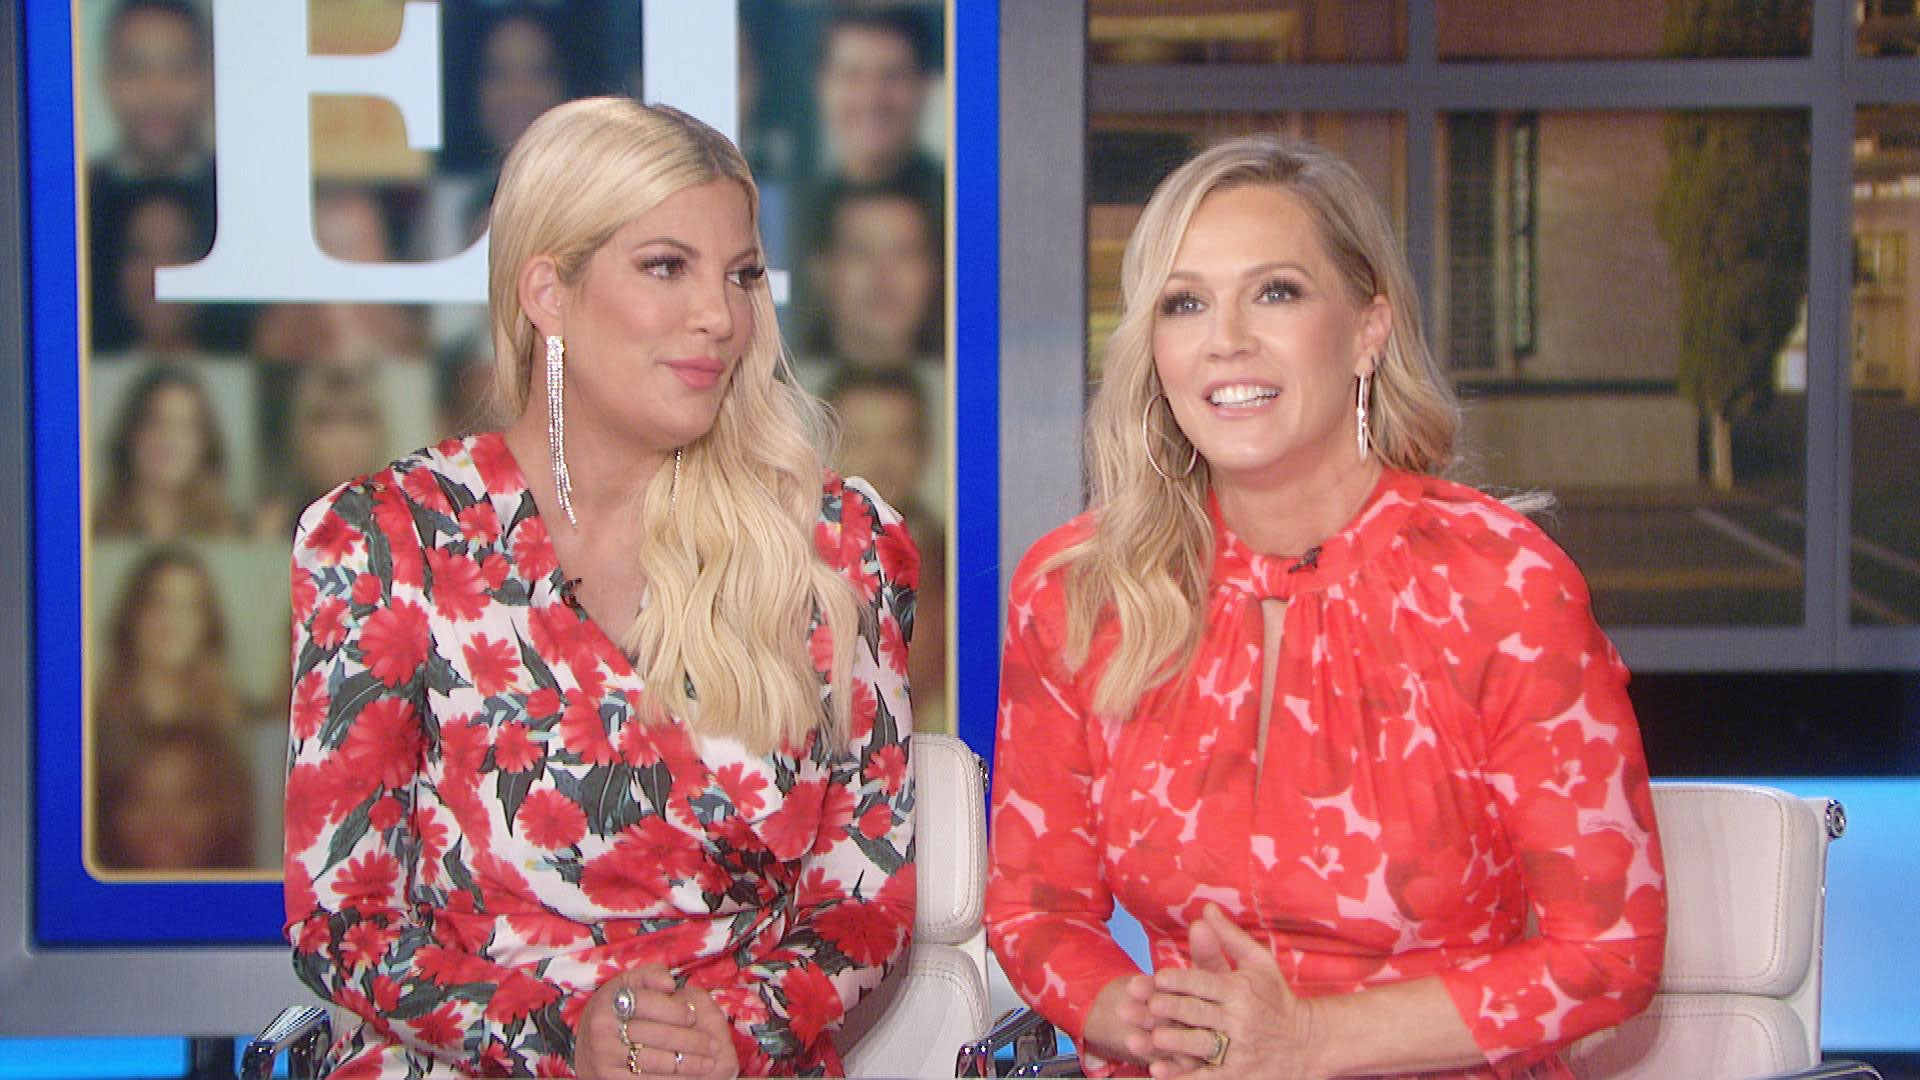 'BH90210' Stars Tori Spelling and Jennie Garth Dish on Finale and Season 2 Plans (Exclusive)